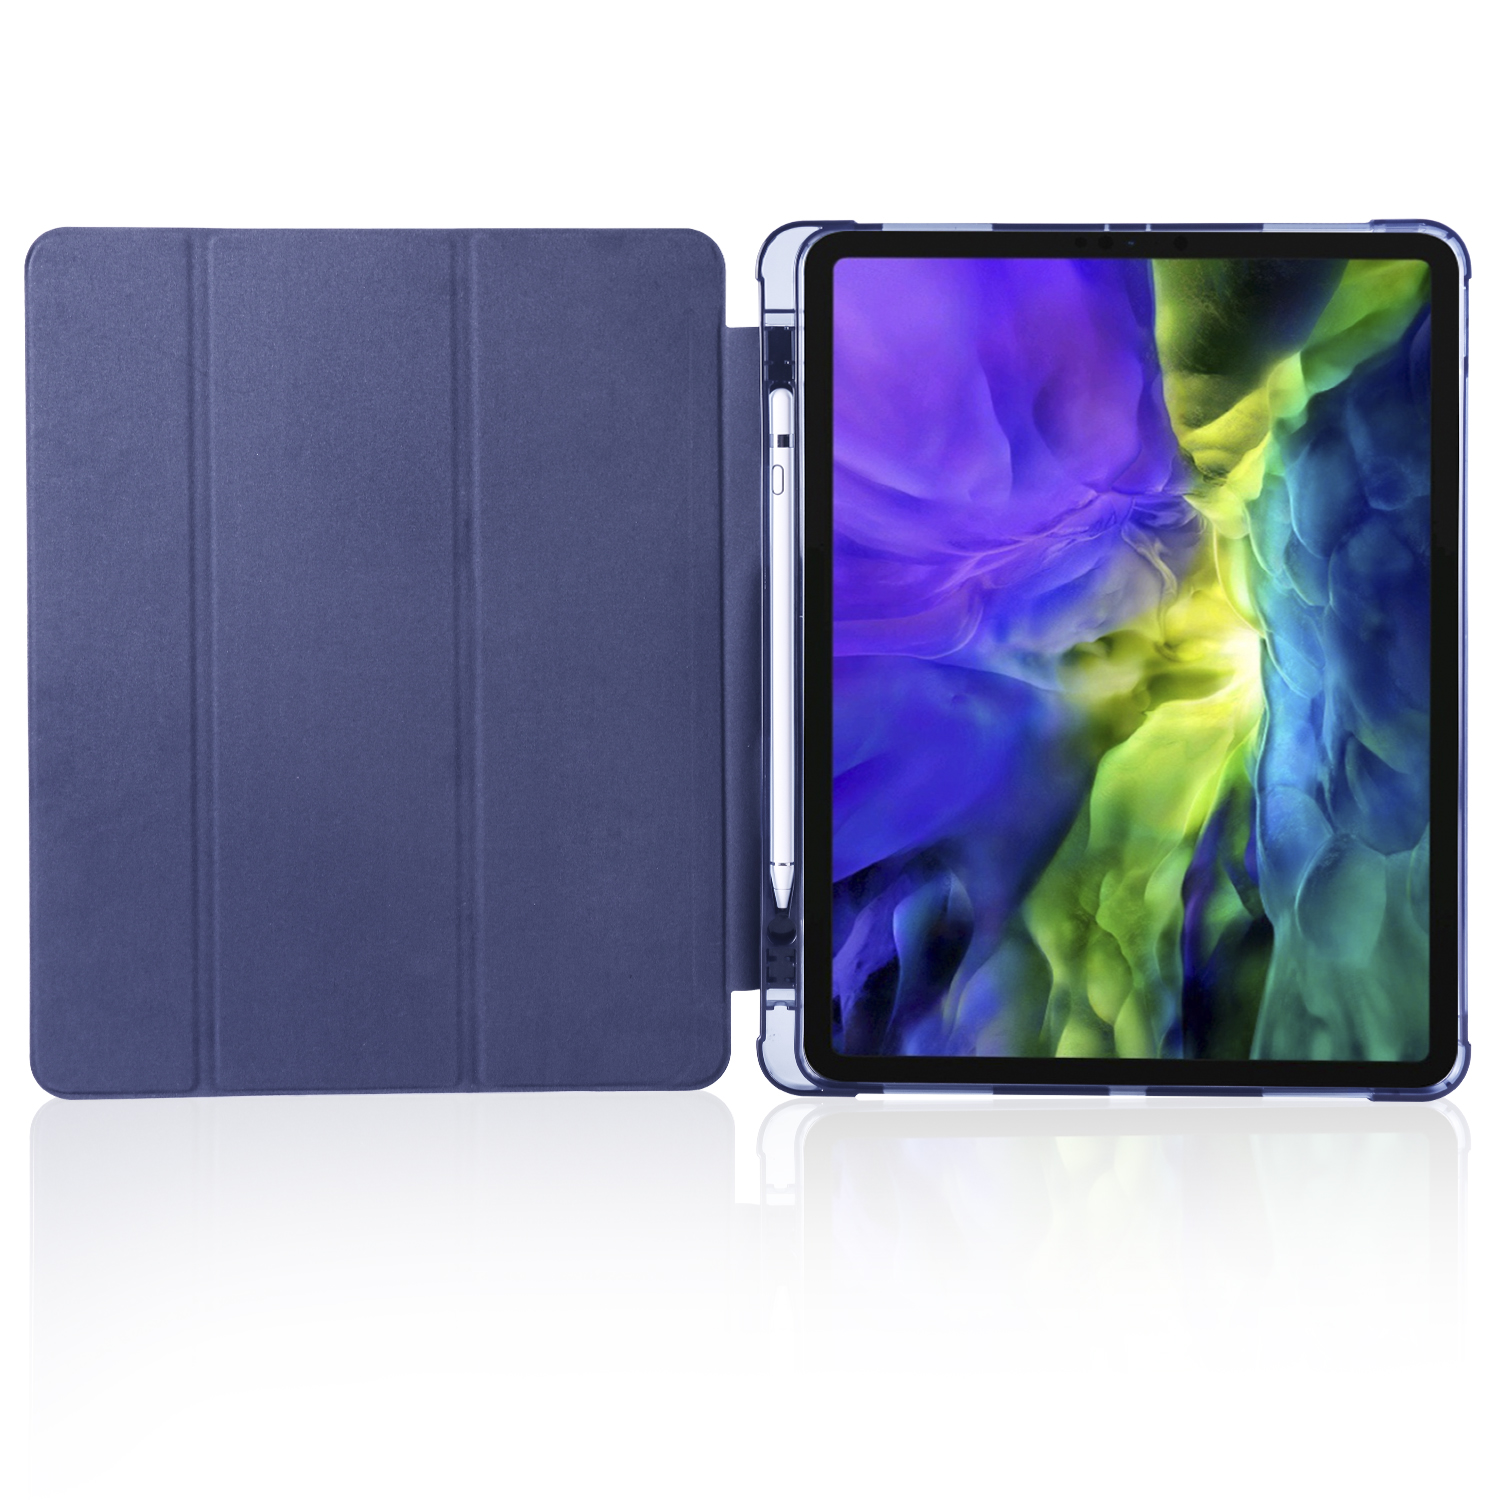 Pen Soft 12.9 Generation 2020 iPad Smart 2018 with Pro 4th 3rd Case Slot for Shockproof